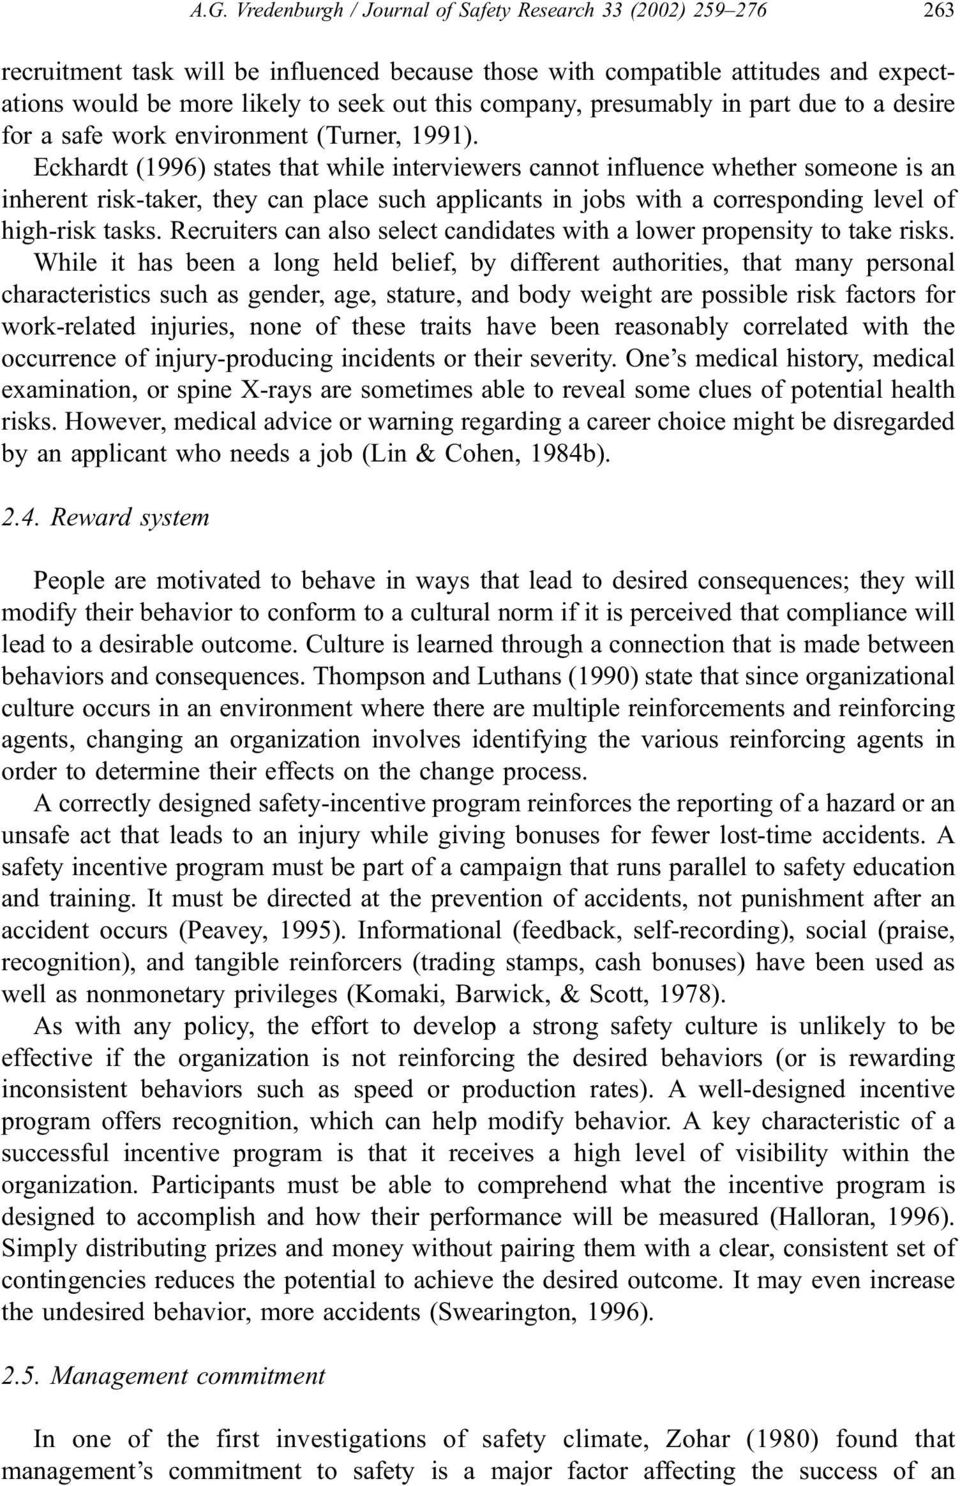 Eckhardt (1996) states that while interviewers cannot influence whether someone is an inherent risk-taker, they can place such applicants in jobs with a corresponding level of high-risk tasks.